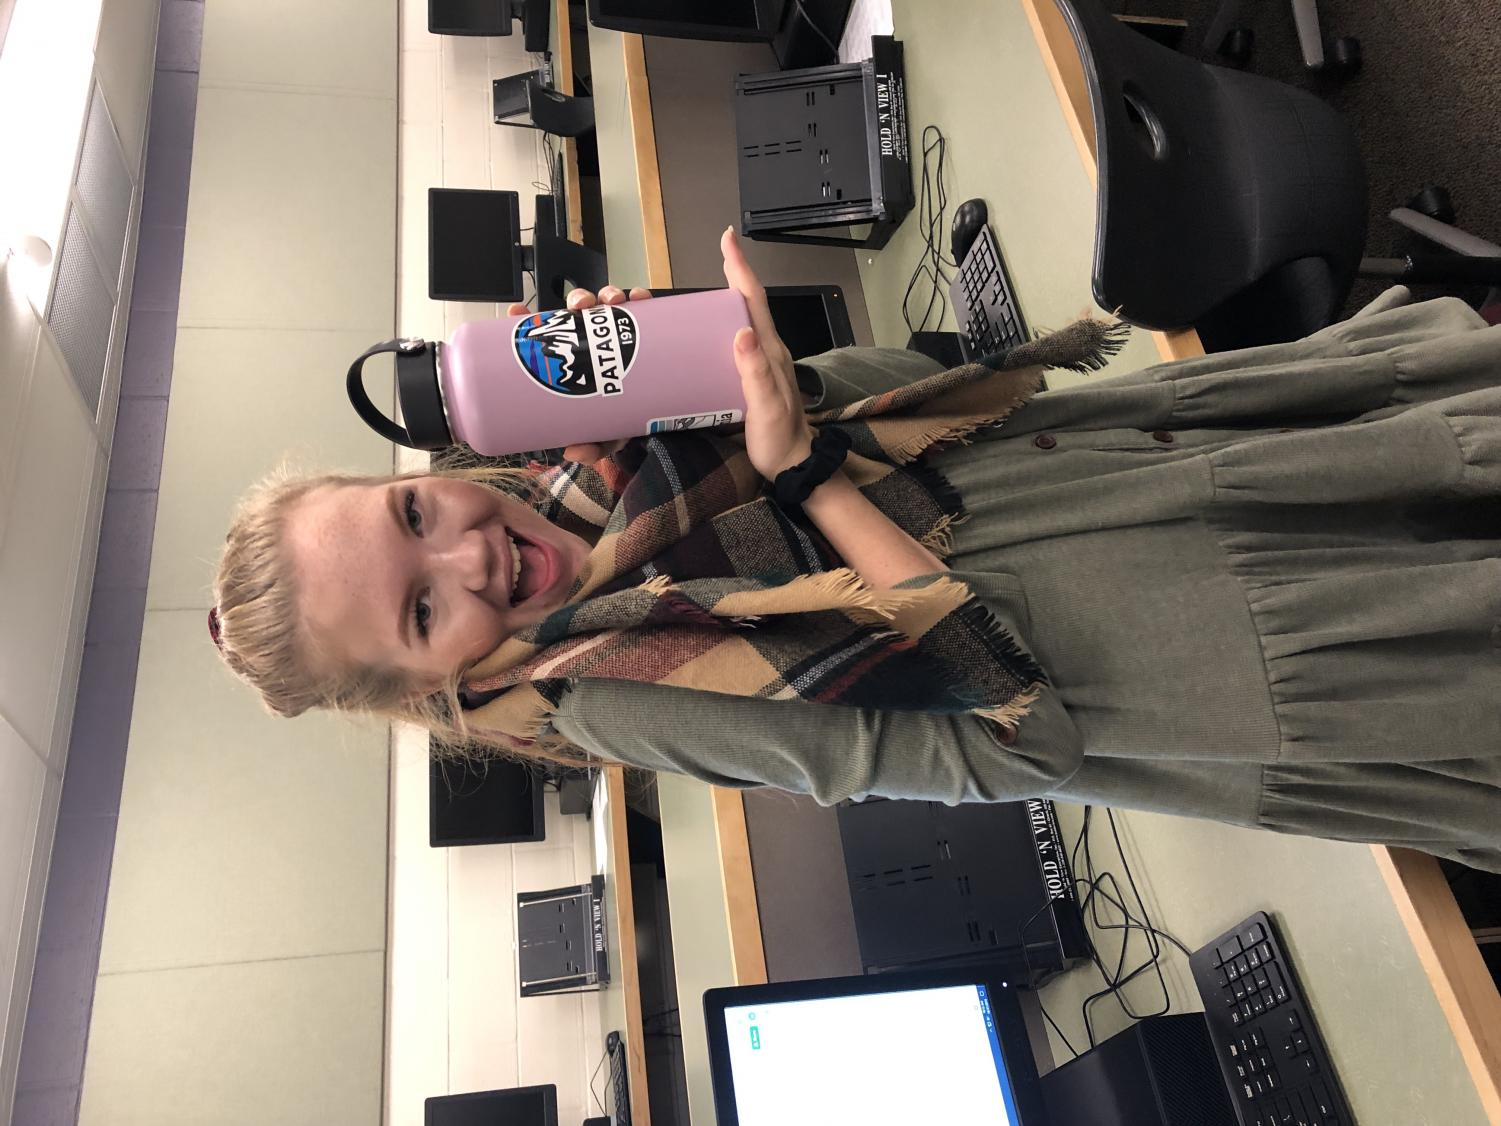 Maggie George poses with her Hydroflask and scrunchie.